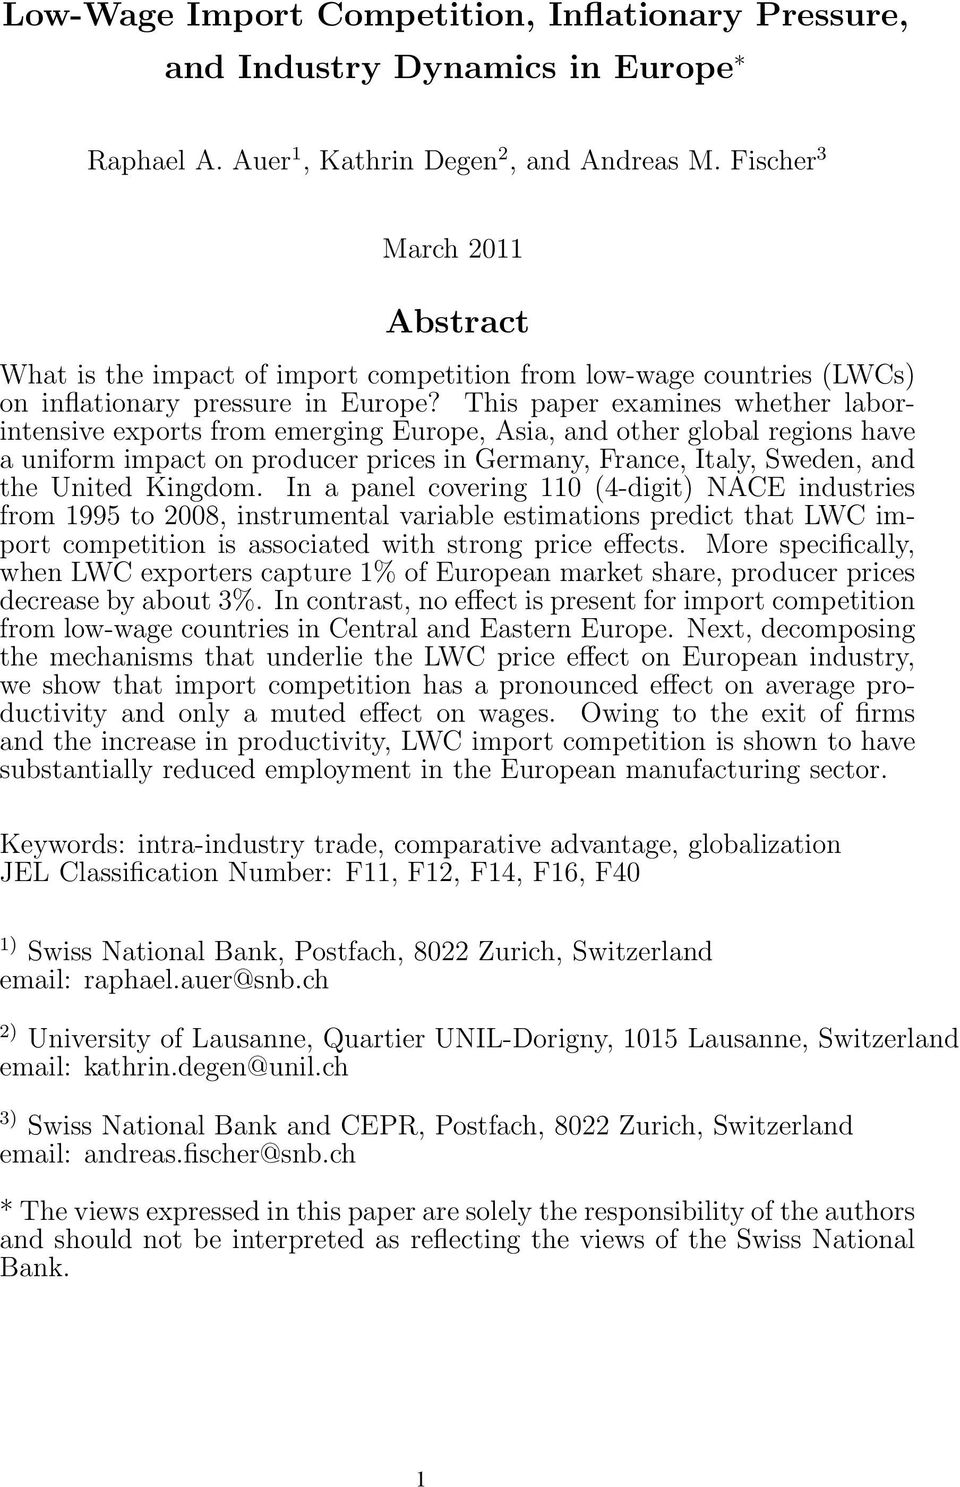 This paper examines whether laborintensive exports from emerging Europe, Asia, and other global regions have a uniform impact on producer prices in Germany, France, Italy, Sweden, and the United